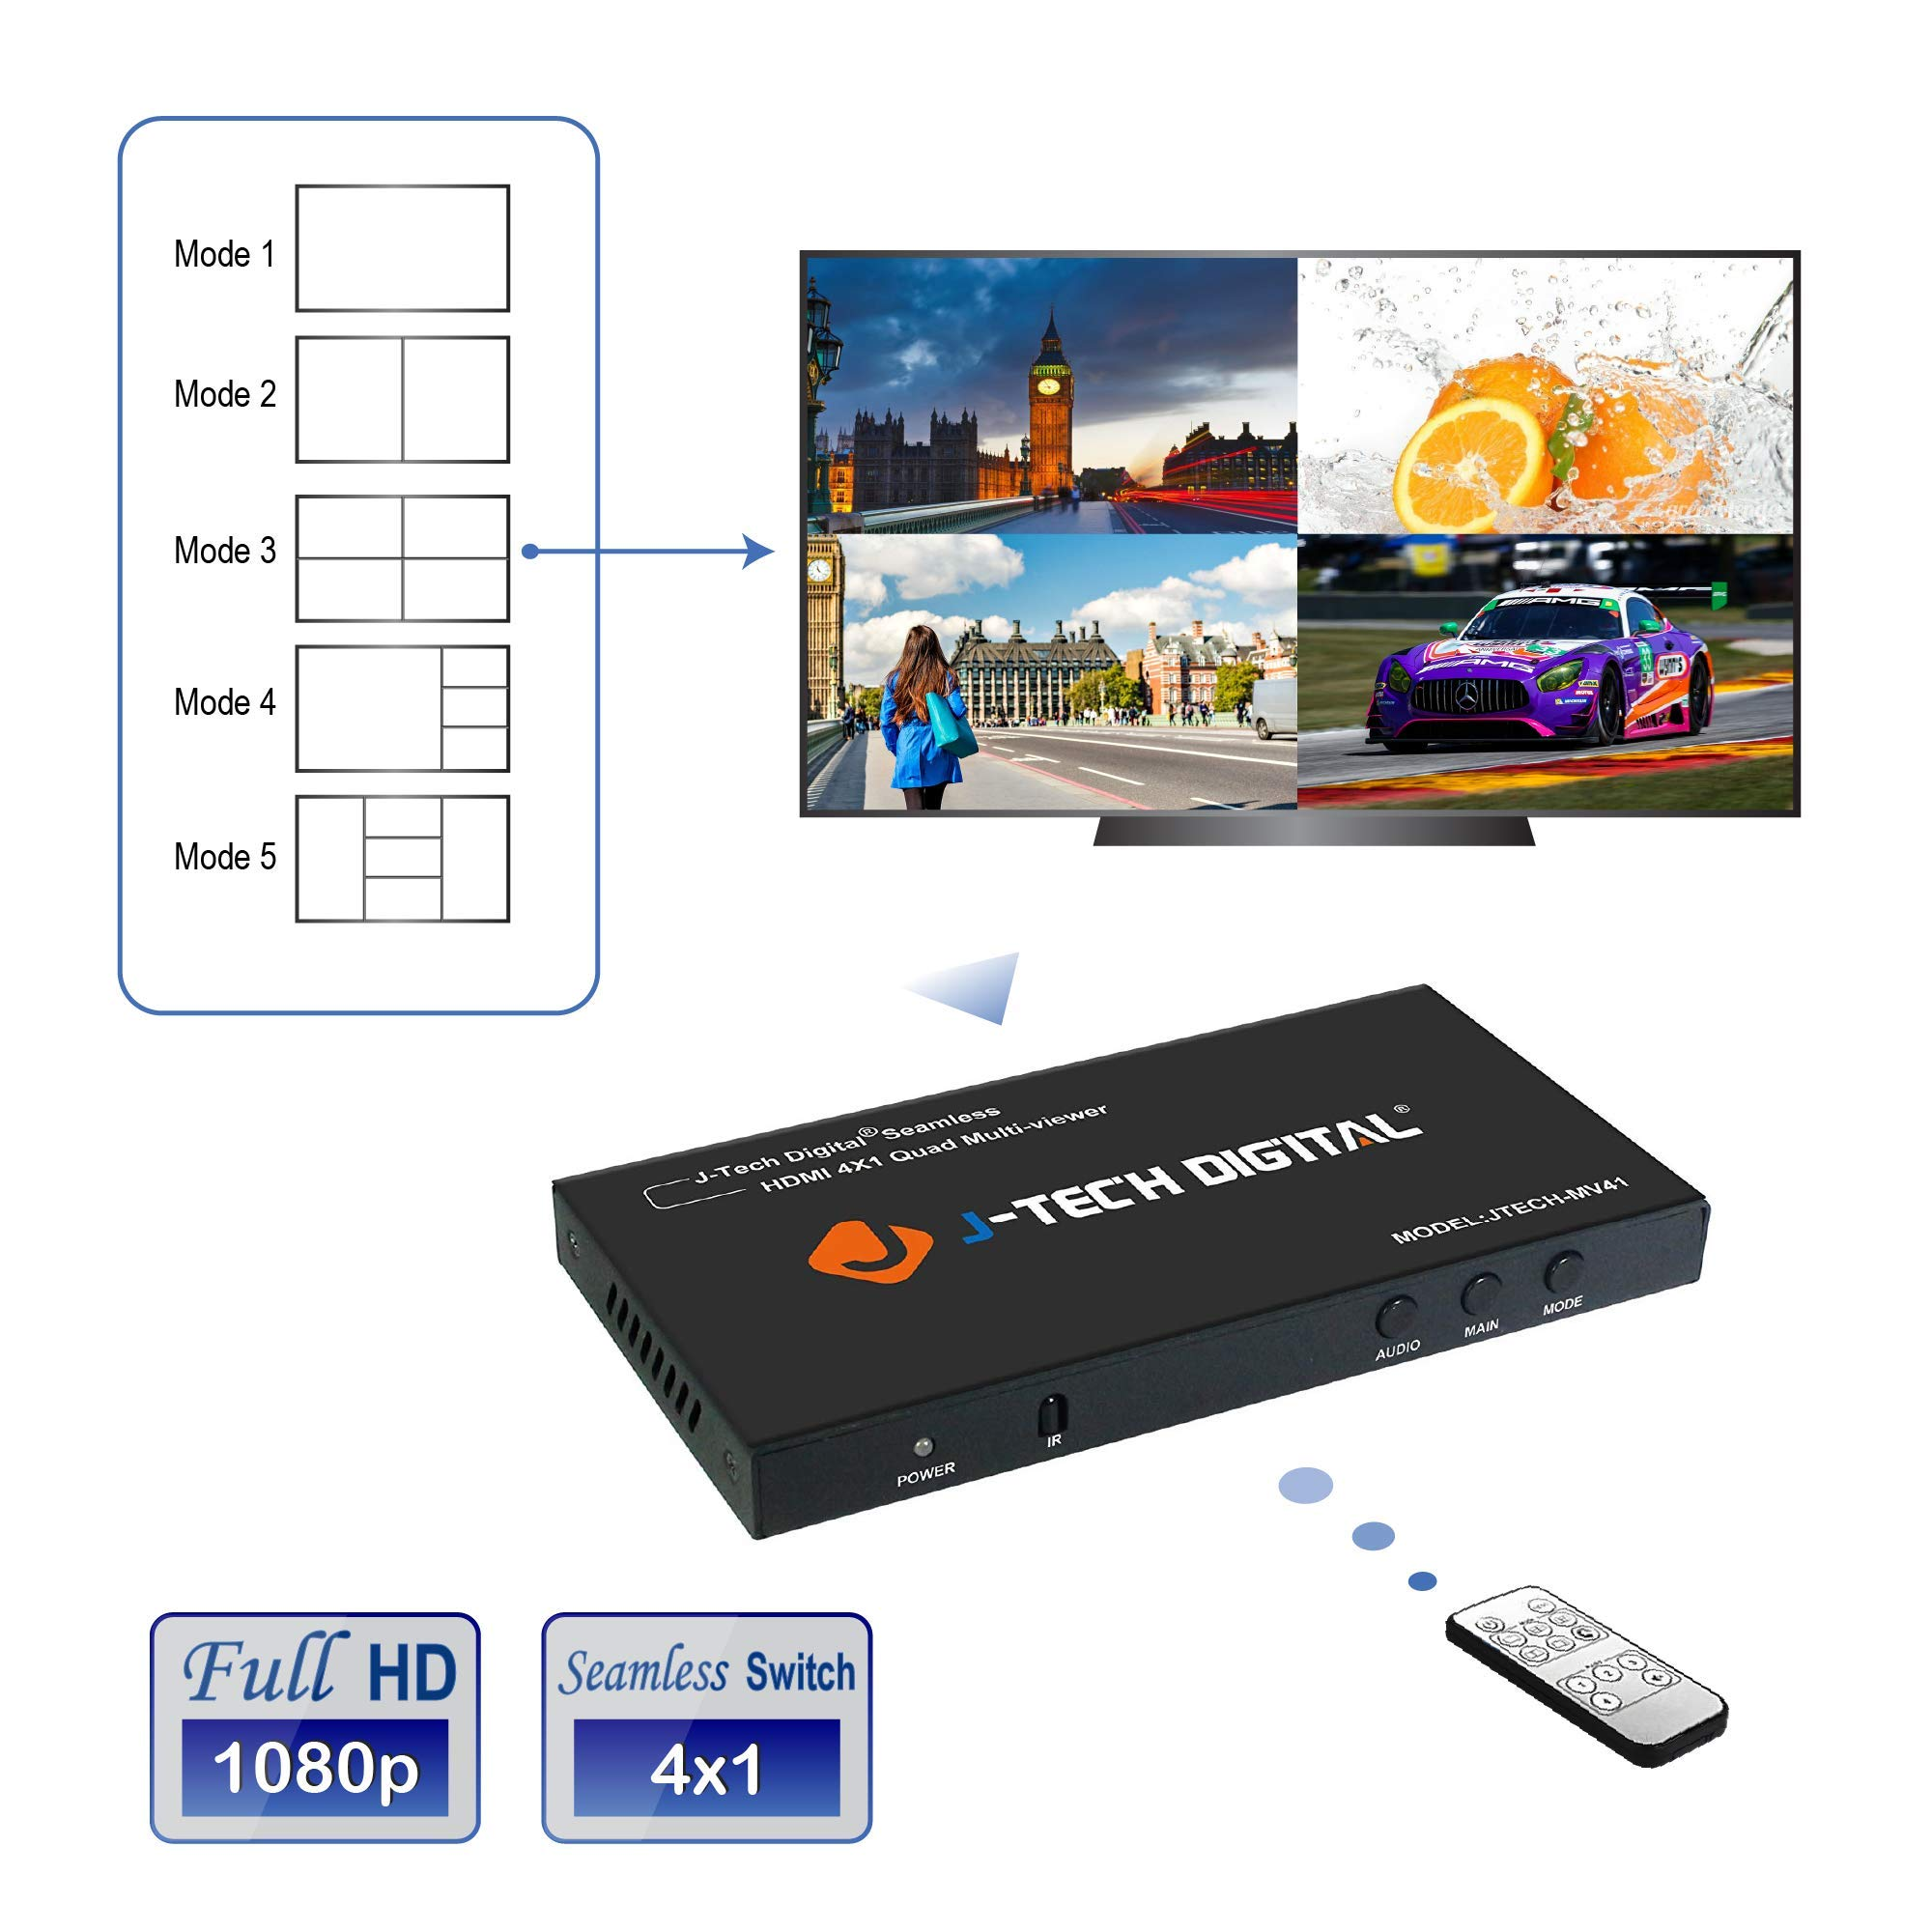 J-Tech Digital HDMI 4x1 1080P Quad Multi-Viewer Seamless Switcher with 5 Different Display Modes and IR Remote Control (JTECH-MV41) by J-Tech Digital